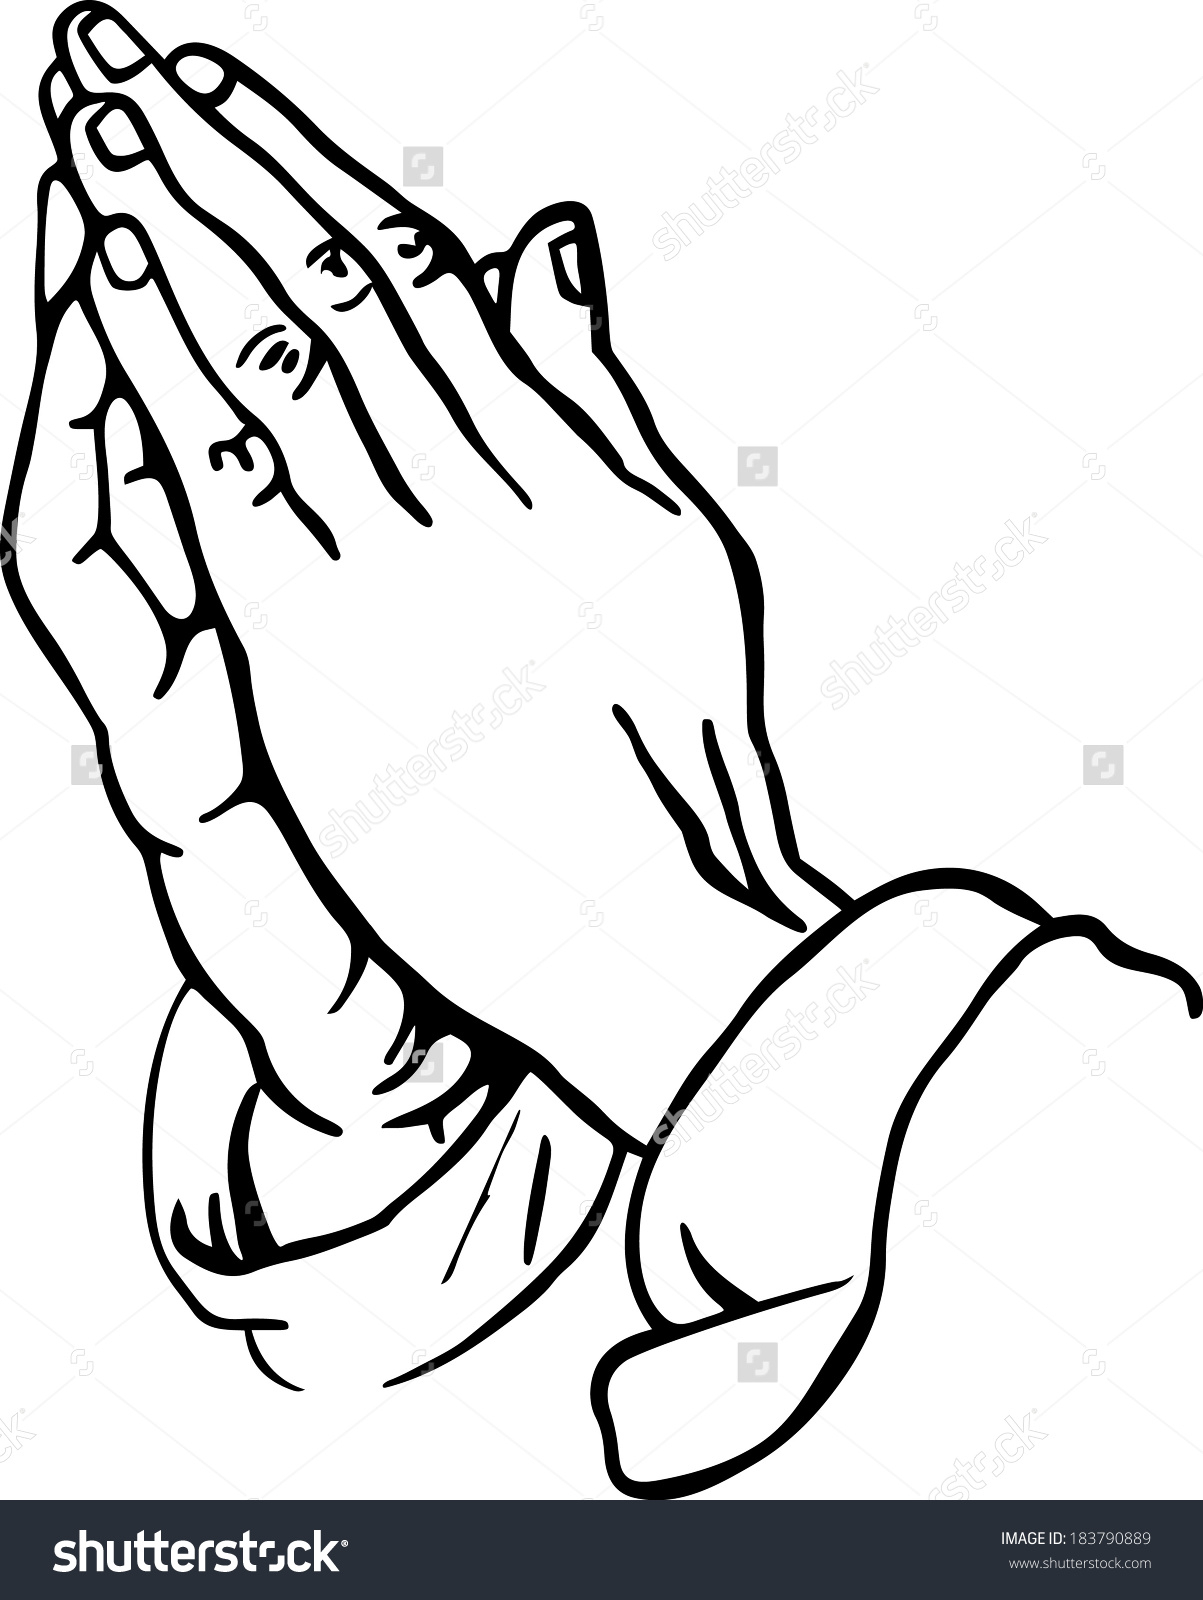 how to draw praying hands emoji step by step